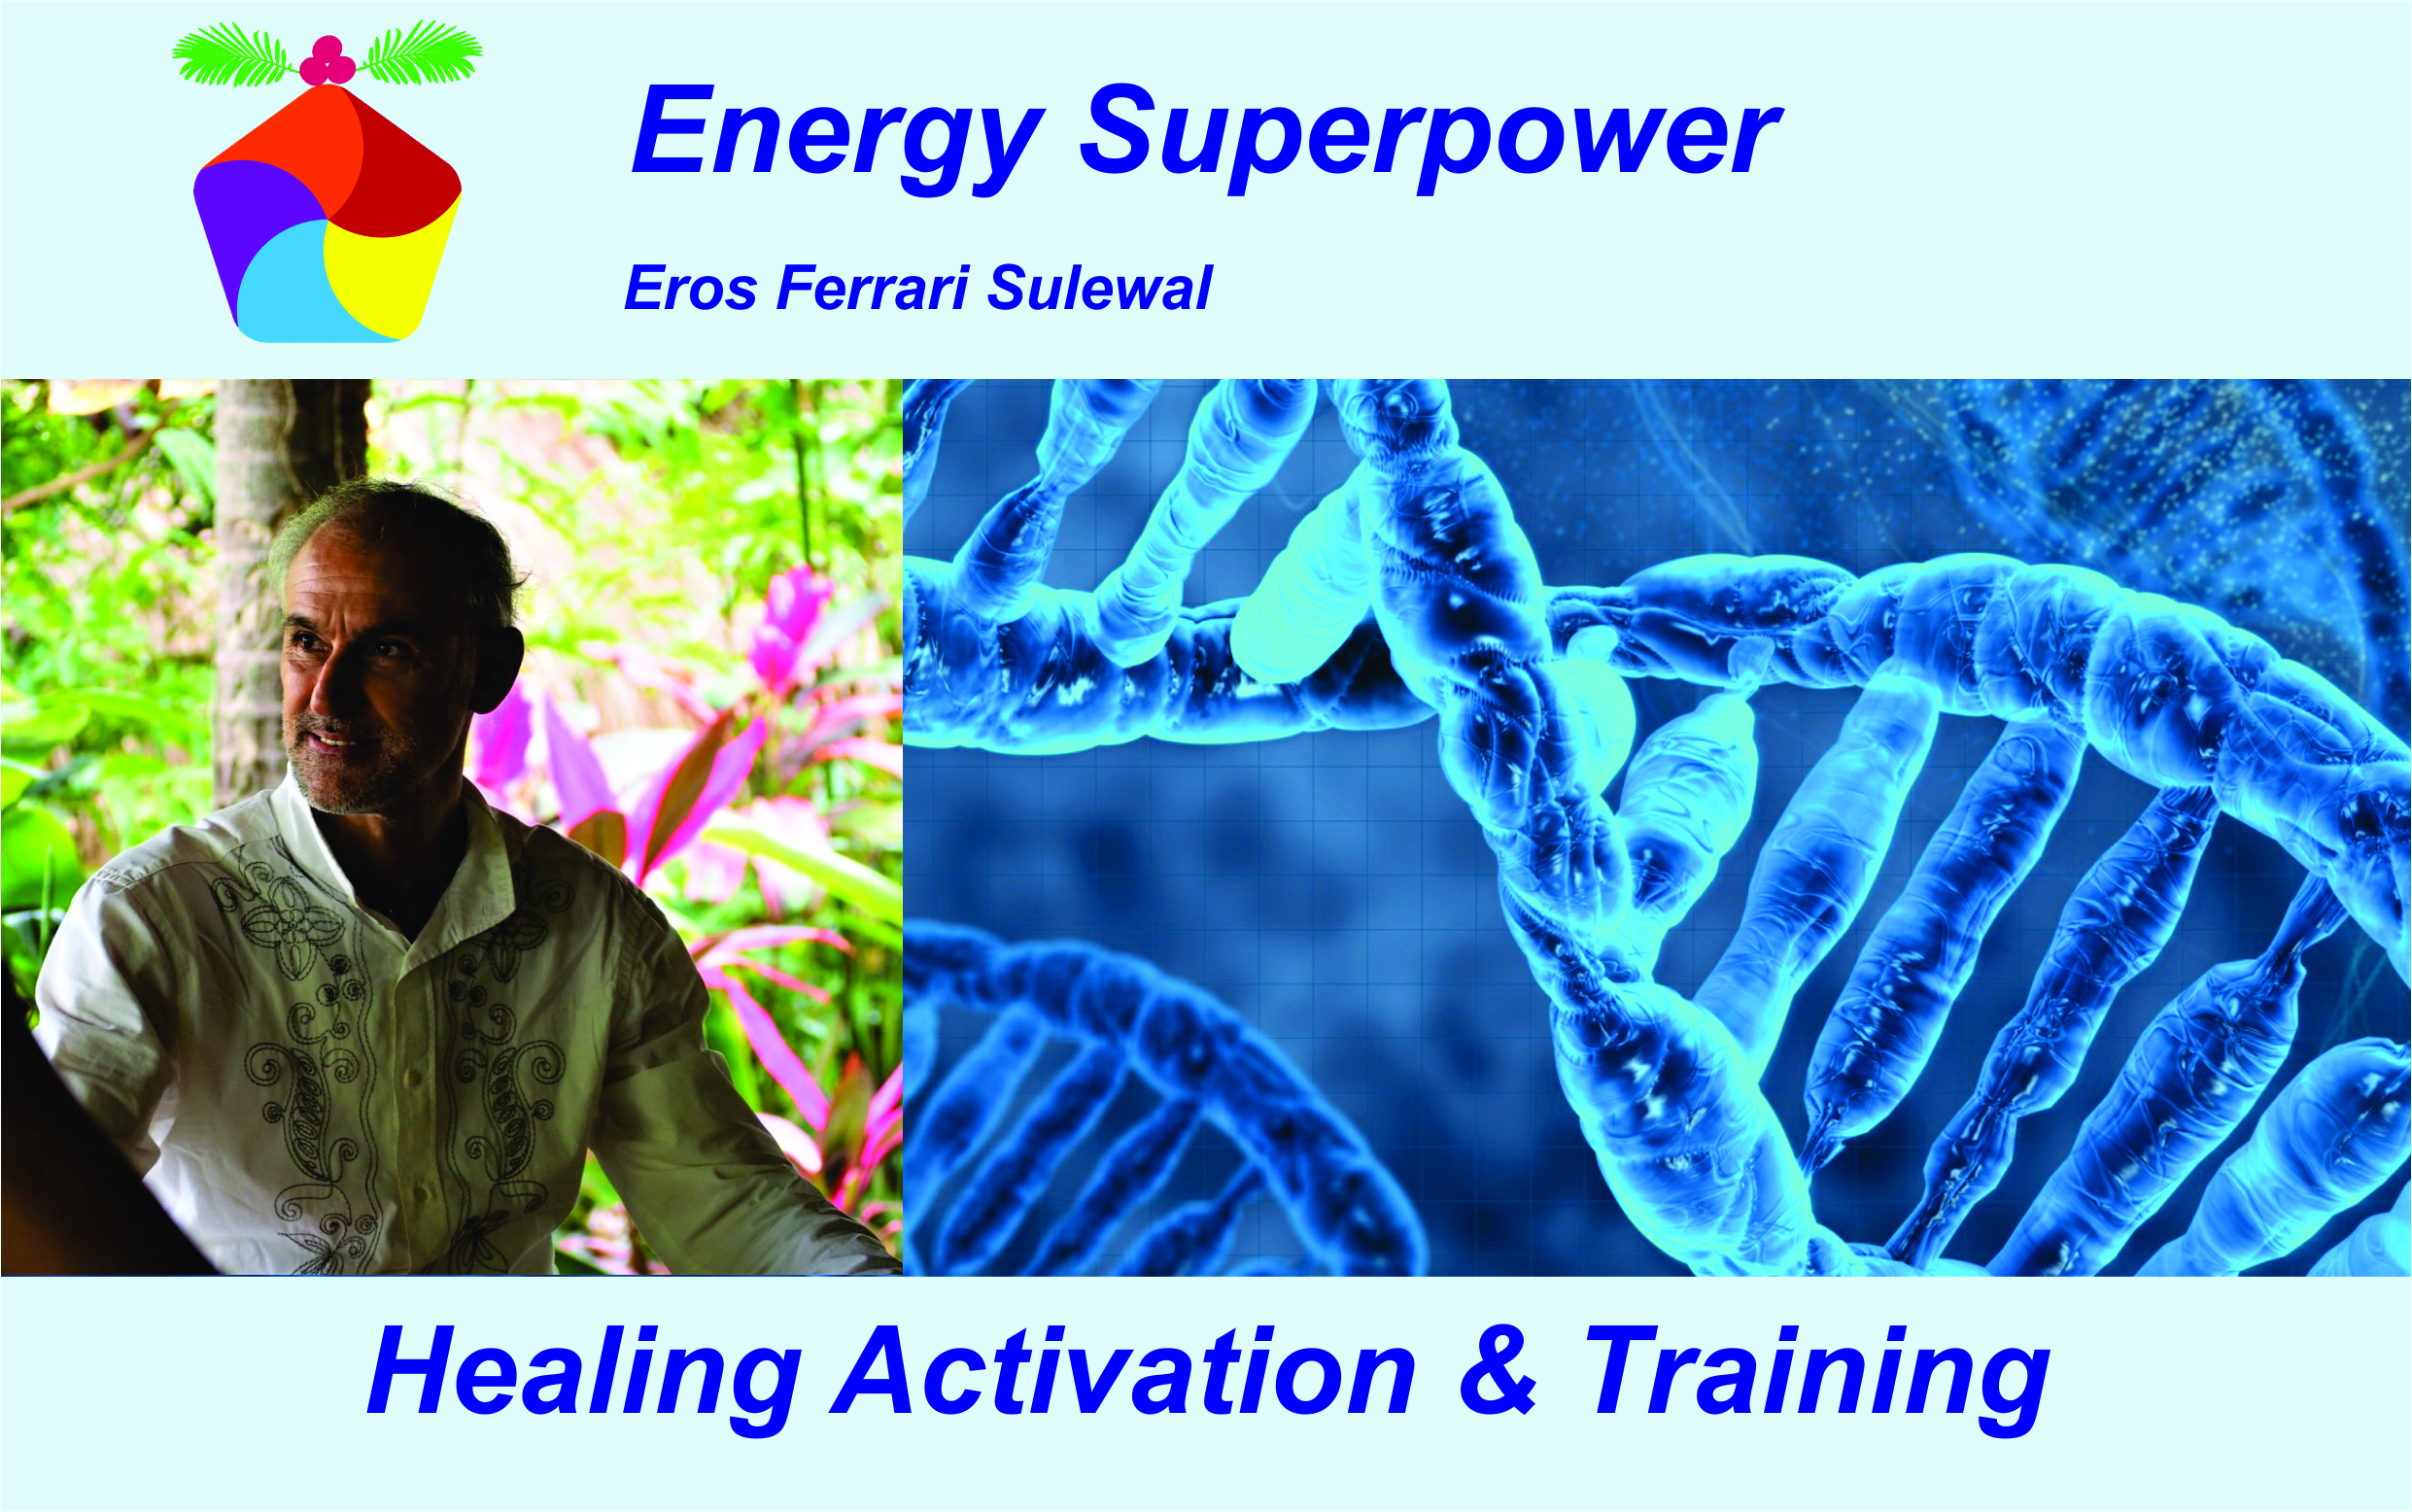 recover regenerated the psychophysical balance, mind and body Wellness! Goodbye toxins nowadays the need increasingly severe to keep the body of the mind in shape. The training has analysis, relaxation, healing and detoxification. Endless bioactivation Great activation of cosmic harmony Bio wave ocean activation SuperPower energy activation Reiki activation High chakra vibration Activation of the pineal DMT gland Kundalini Awakening Awakening and DNA repair B. Practice of energy superpower techniques Relaxation is natural anti-stress Calm mind in a few seconds Lower the frequency of the brain Respiratory balance Live the here and now! Nervous system therapy Perfect psycho-physical balance Balance of the cardiovascular system Rebalancing chakra Awakening of consciousness Unlock the energy blocks Read and clean the Aura Reading and purification of Karma Postural and spiritual alignment Psychosomatic healing Past life and healing of the Ancestors DNA damage and repair Healing of quantum energy Neuroscientific healing. Unlimited extraordinary benefits! Radiant Soul detoxifying workout Booking enrgysuperpower1@gmail.com WhatsApp +39371 1861349 with over 15 years experience in Asia. He has managed wellness resorts in Thailand and multi-disciplinary clinics in Thailand and Australia. Retired for sale, high-networth clients. Eros Ferrari Sulewal key focus is empowerment through education: empowering guests to achieve their personal goals and empowering staff to deliver extraordinary service and support and thus enrich and improve their own life experience